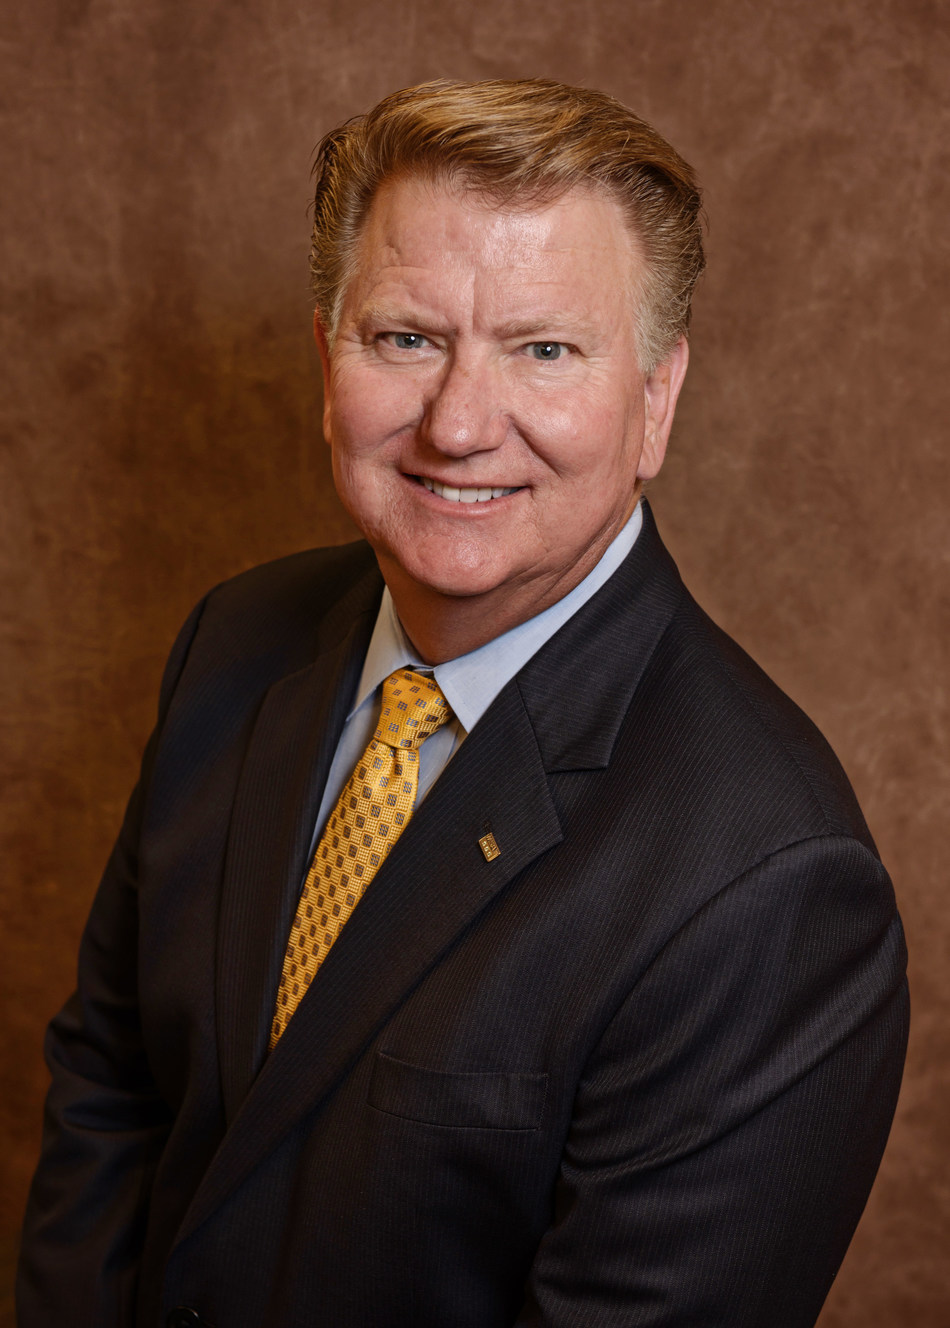 William M. Lambert, MSA Chairman, President and CEO, re-elected as Director of MSA Safety Incorporated.